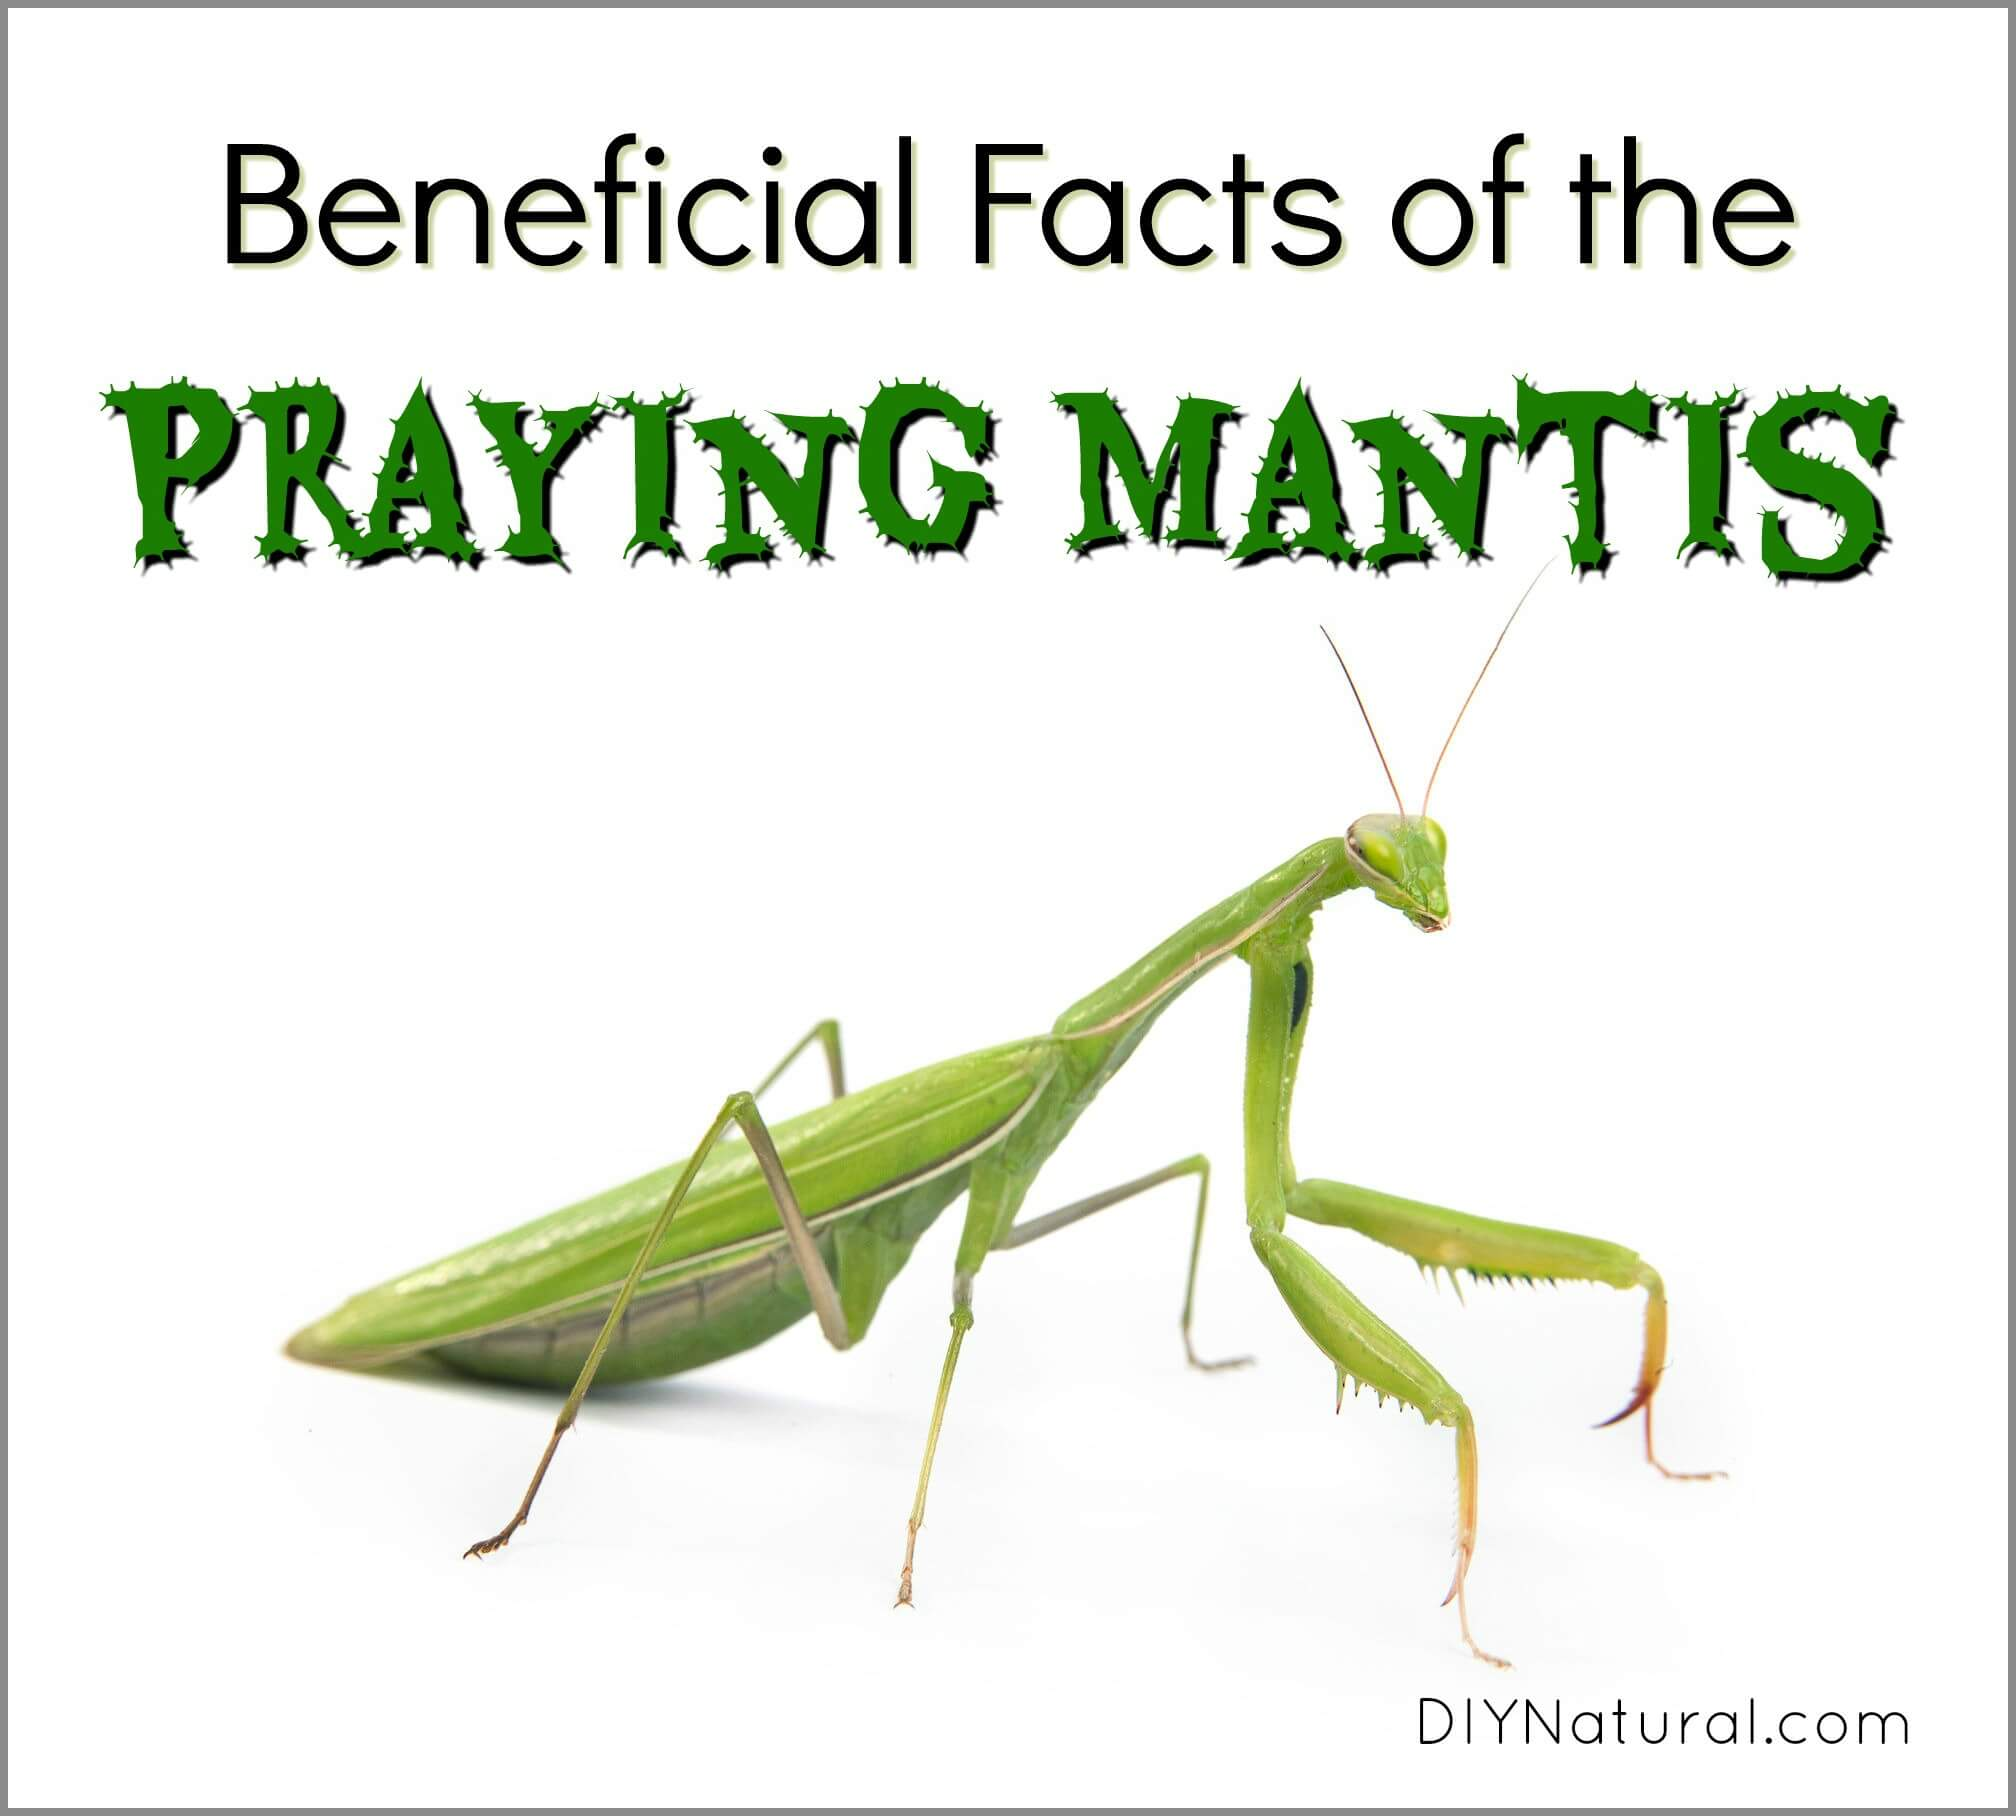 Praying Mantis Facts The Facts And Benefits Of Attracting Praying Mantis